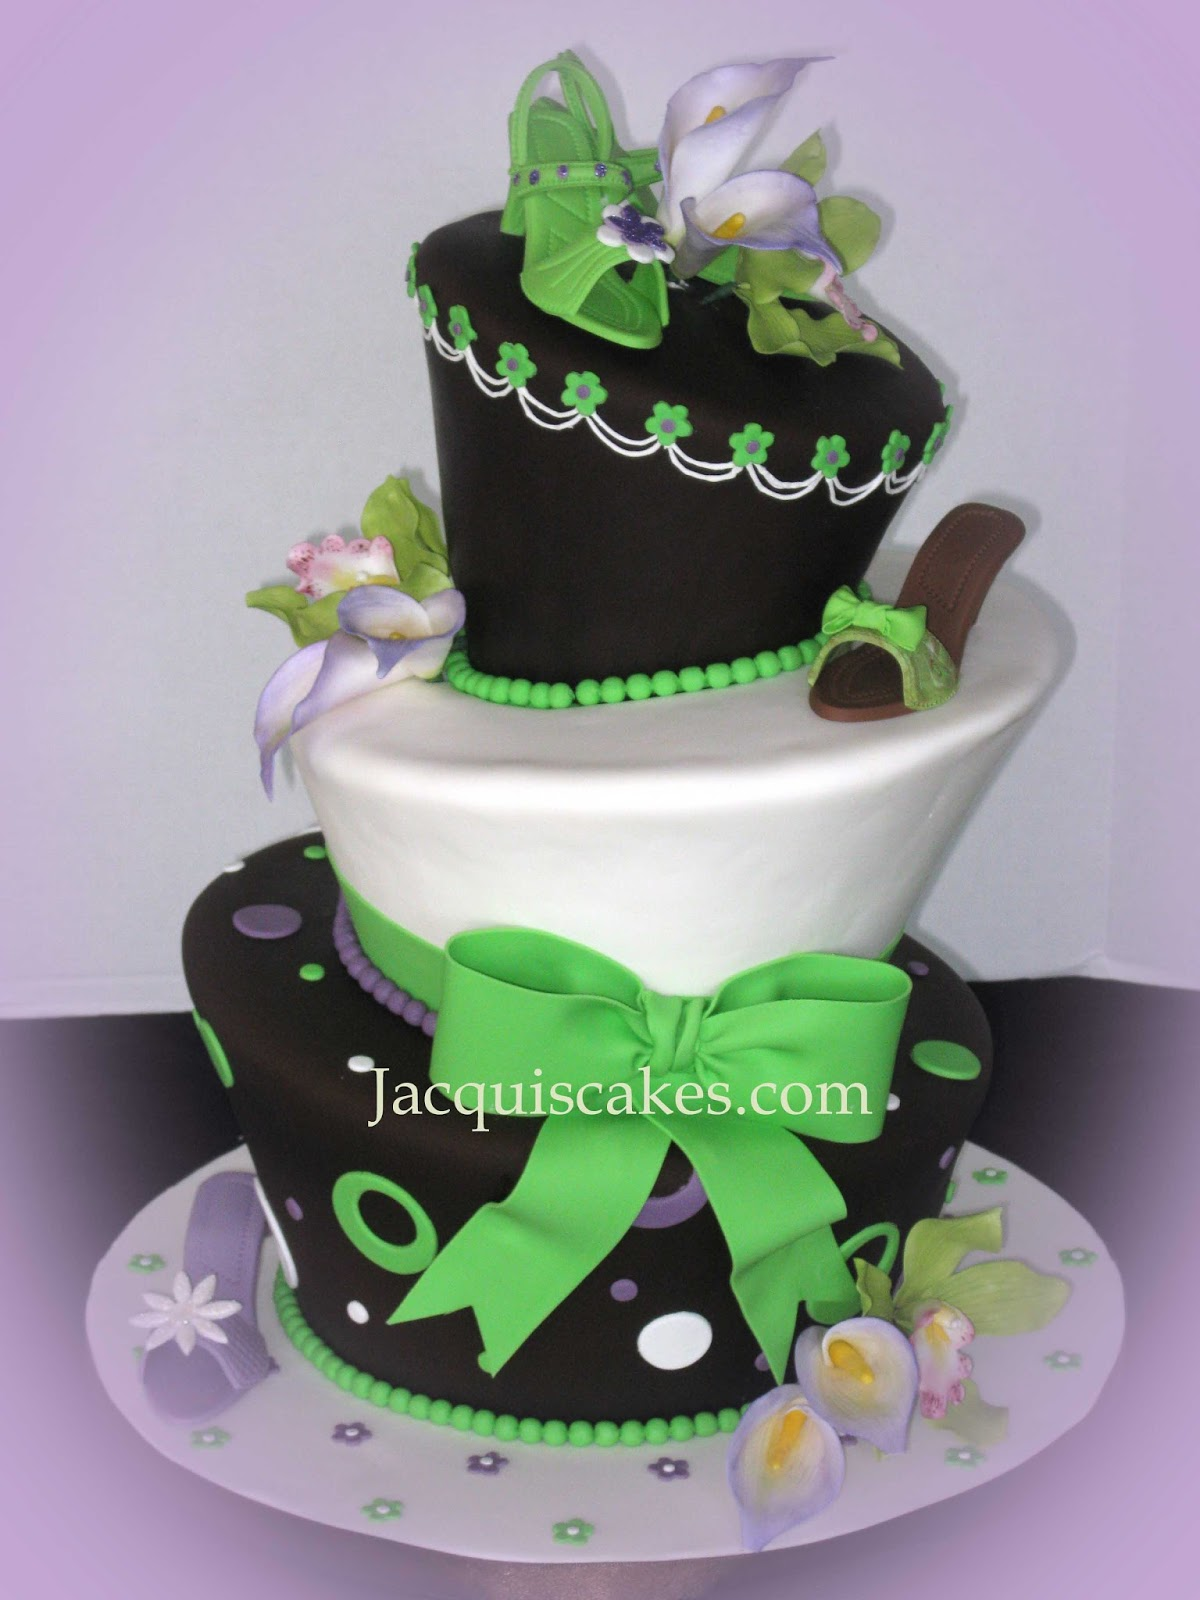 Wedding Cakes That Appear To Be Topsy Turvey